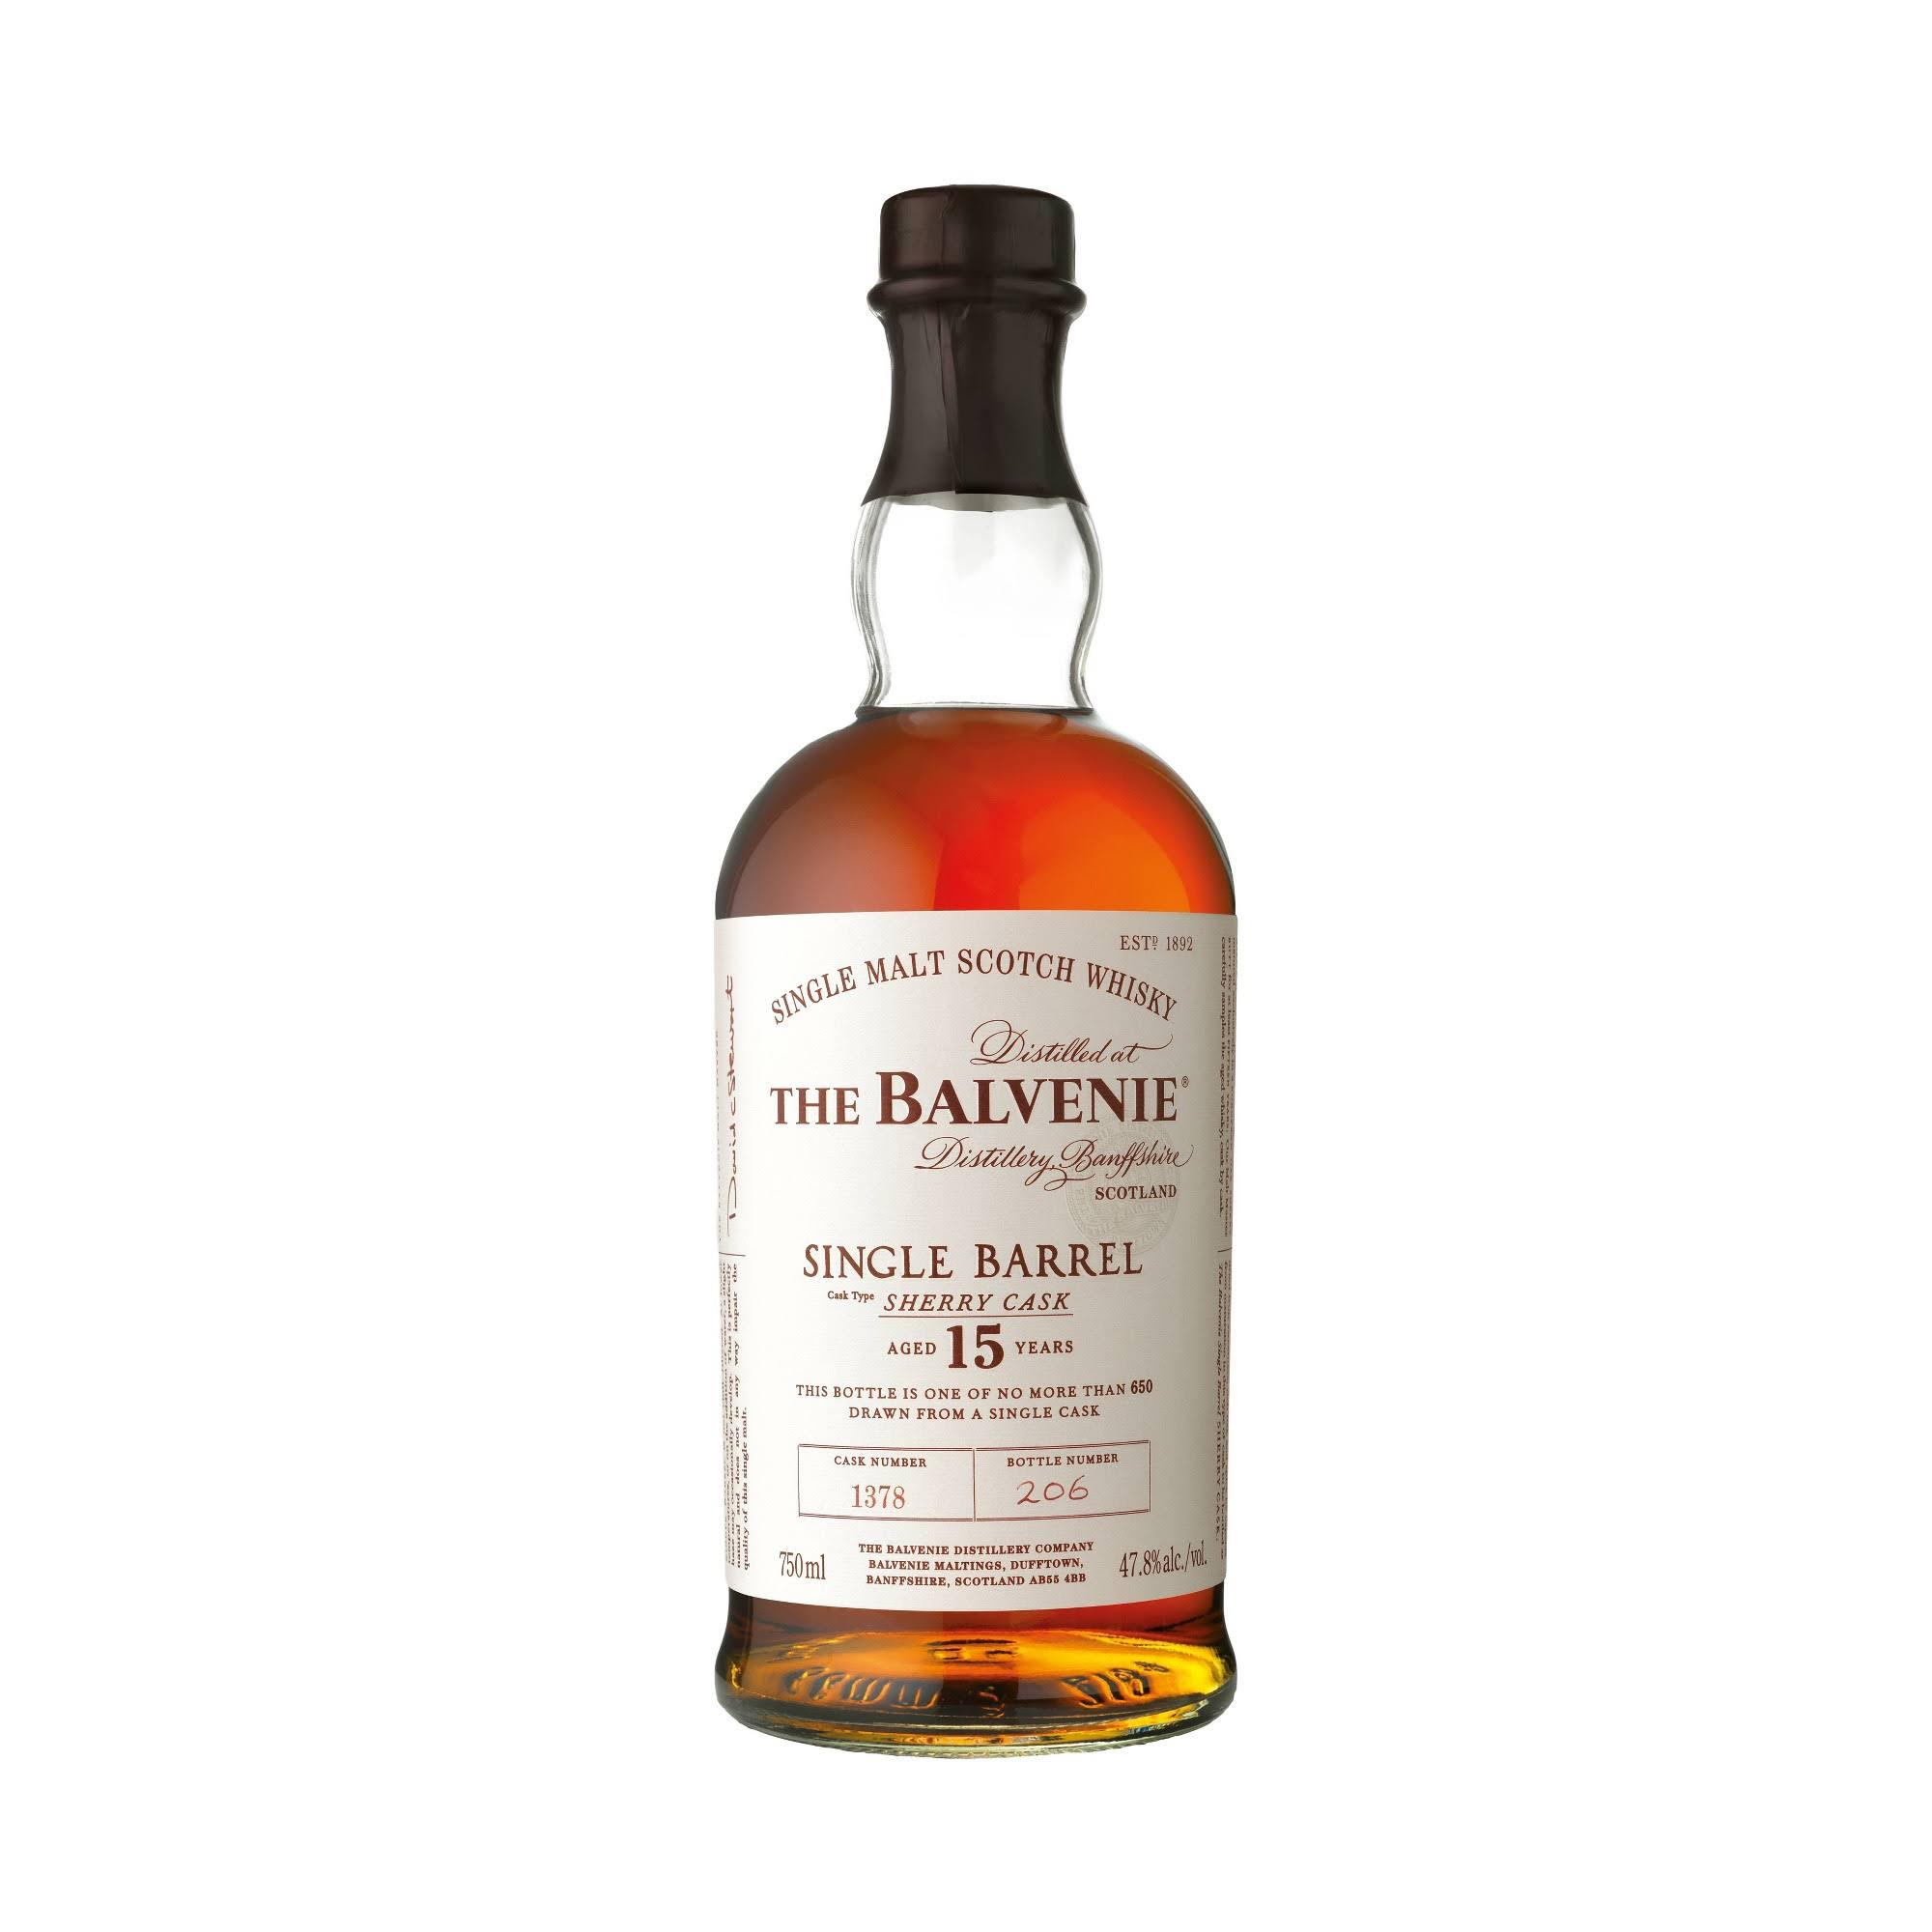 Balvenie 15 Year Old Sherry Cask Single Barrel Single Malt Scotch Whiskey - 750 ml bottle